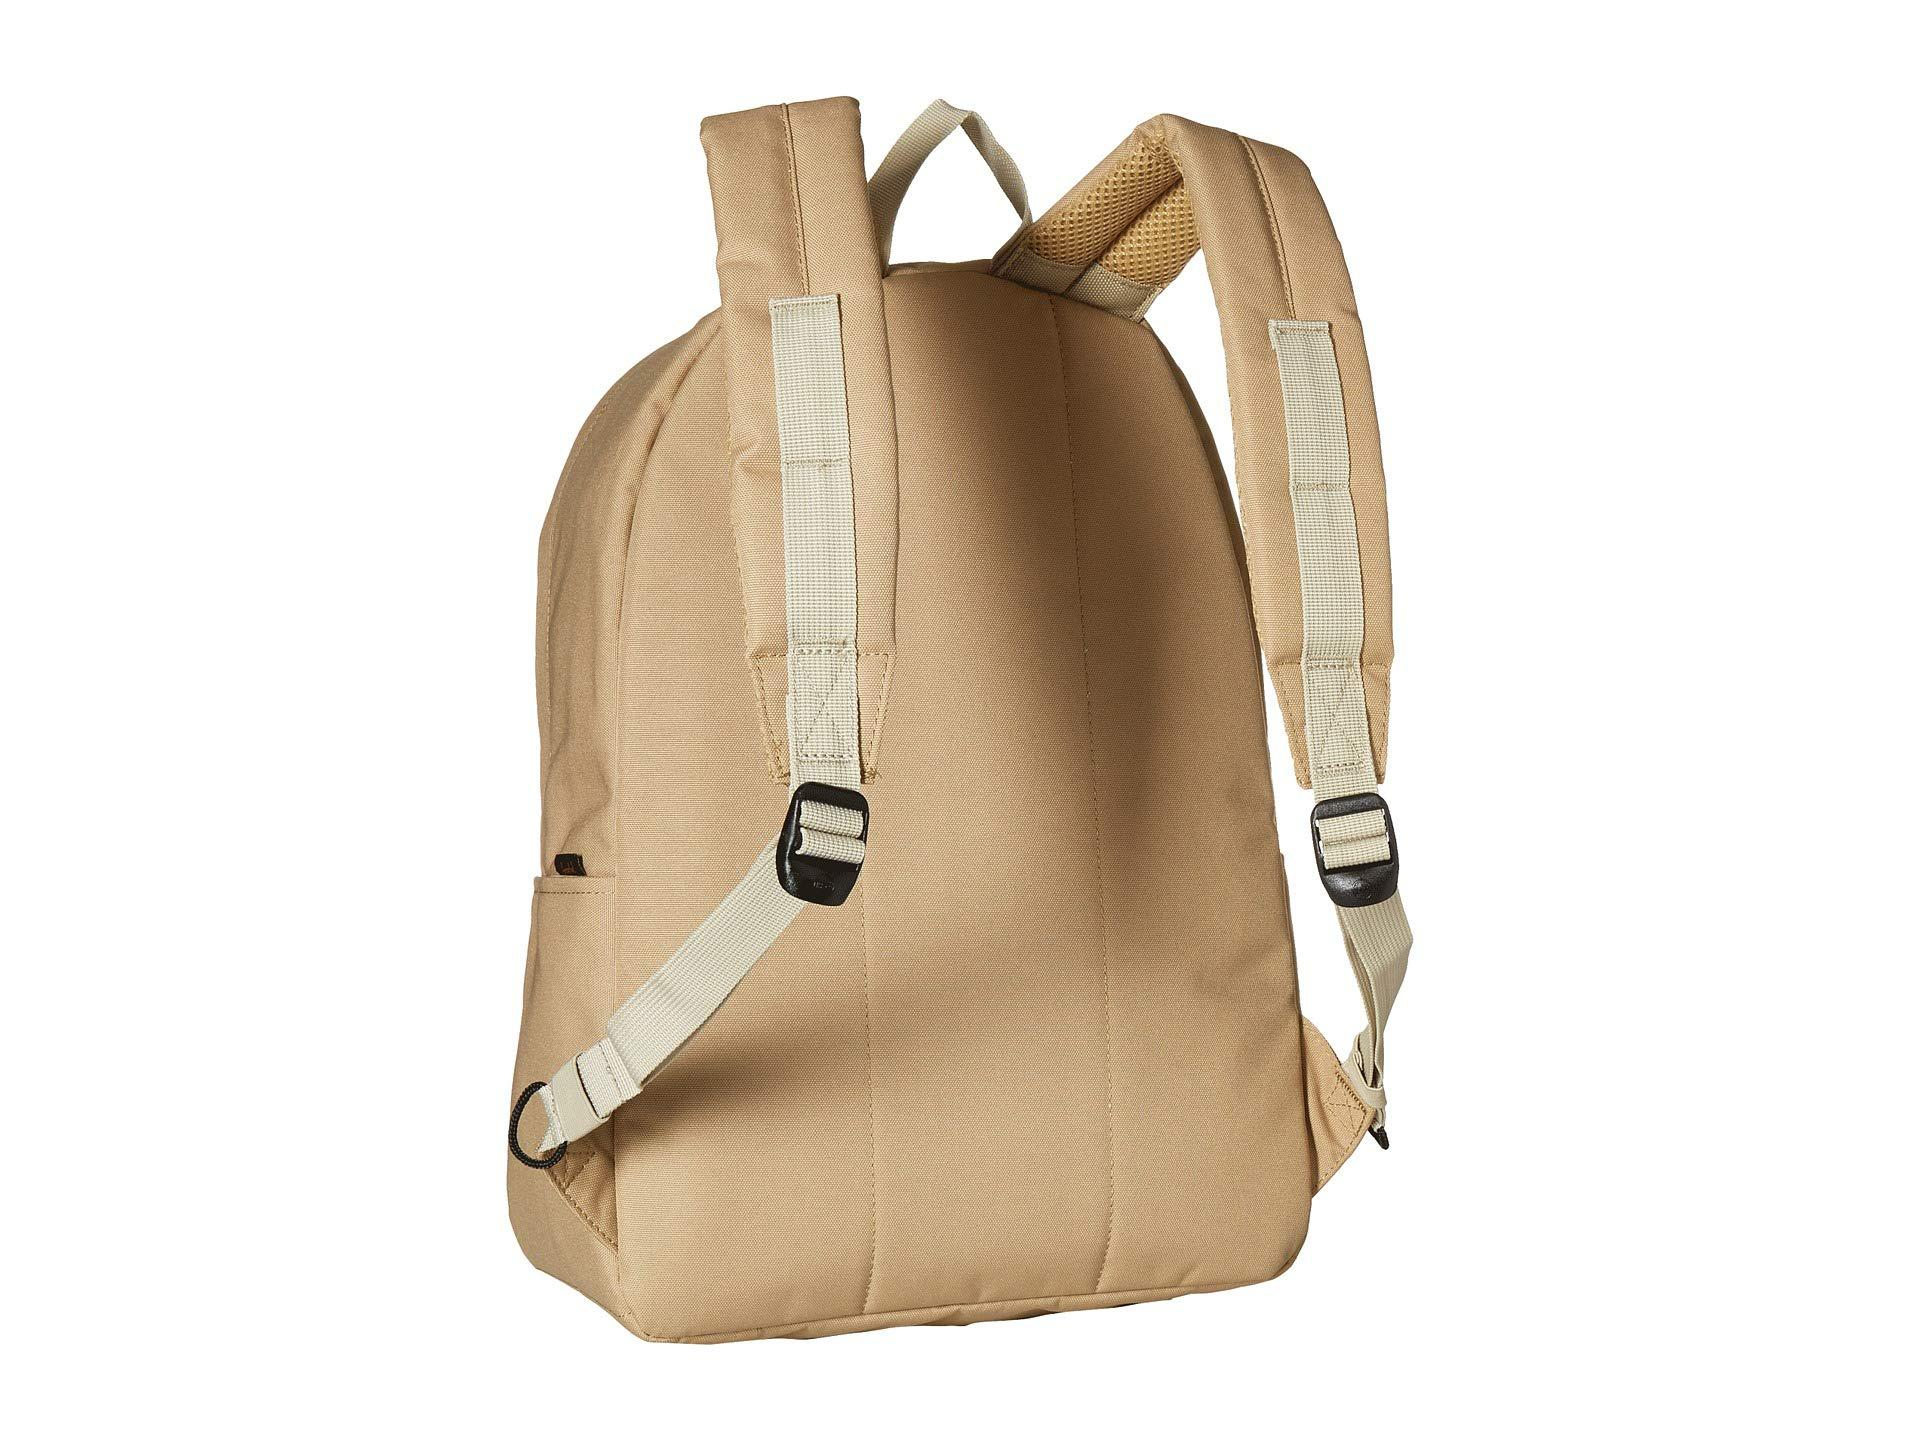 4afe9664f4 Herschel Supply Co. - Multicolor Classic X-large (black Gridlock Gold)  Backpack. View fullscreen